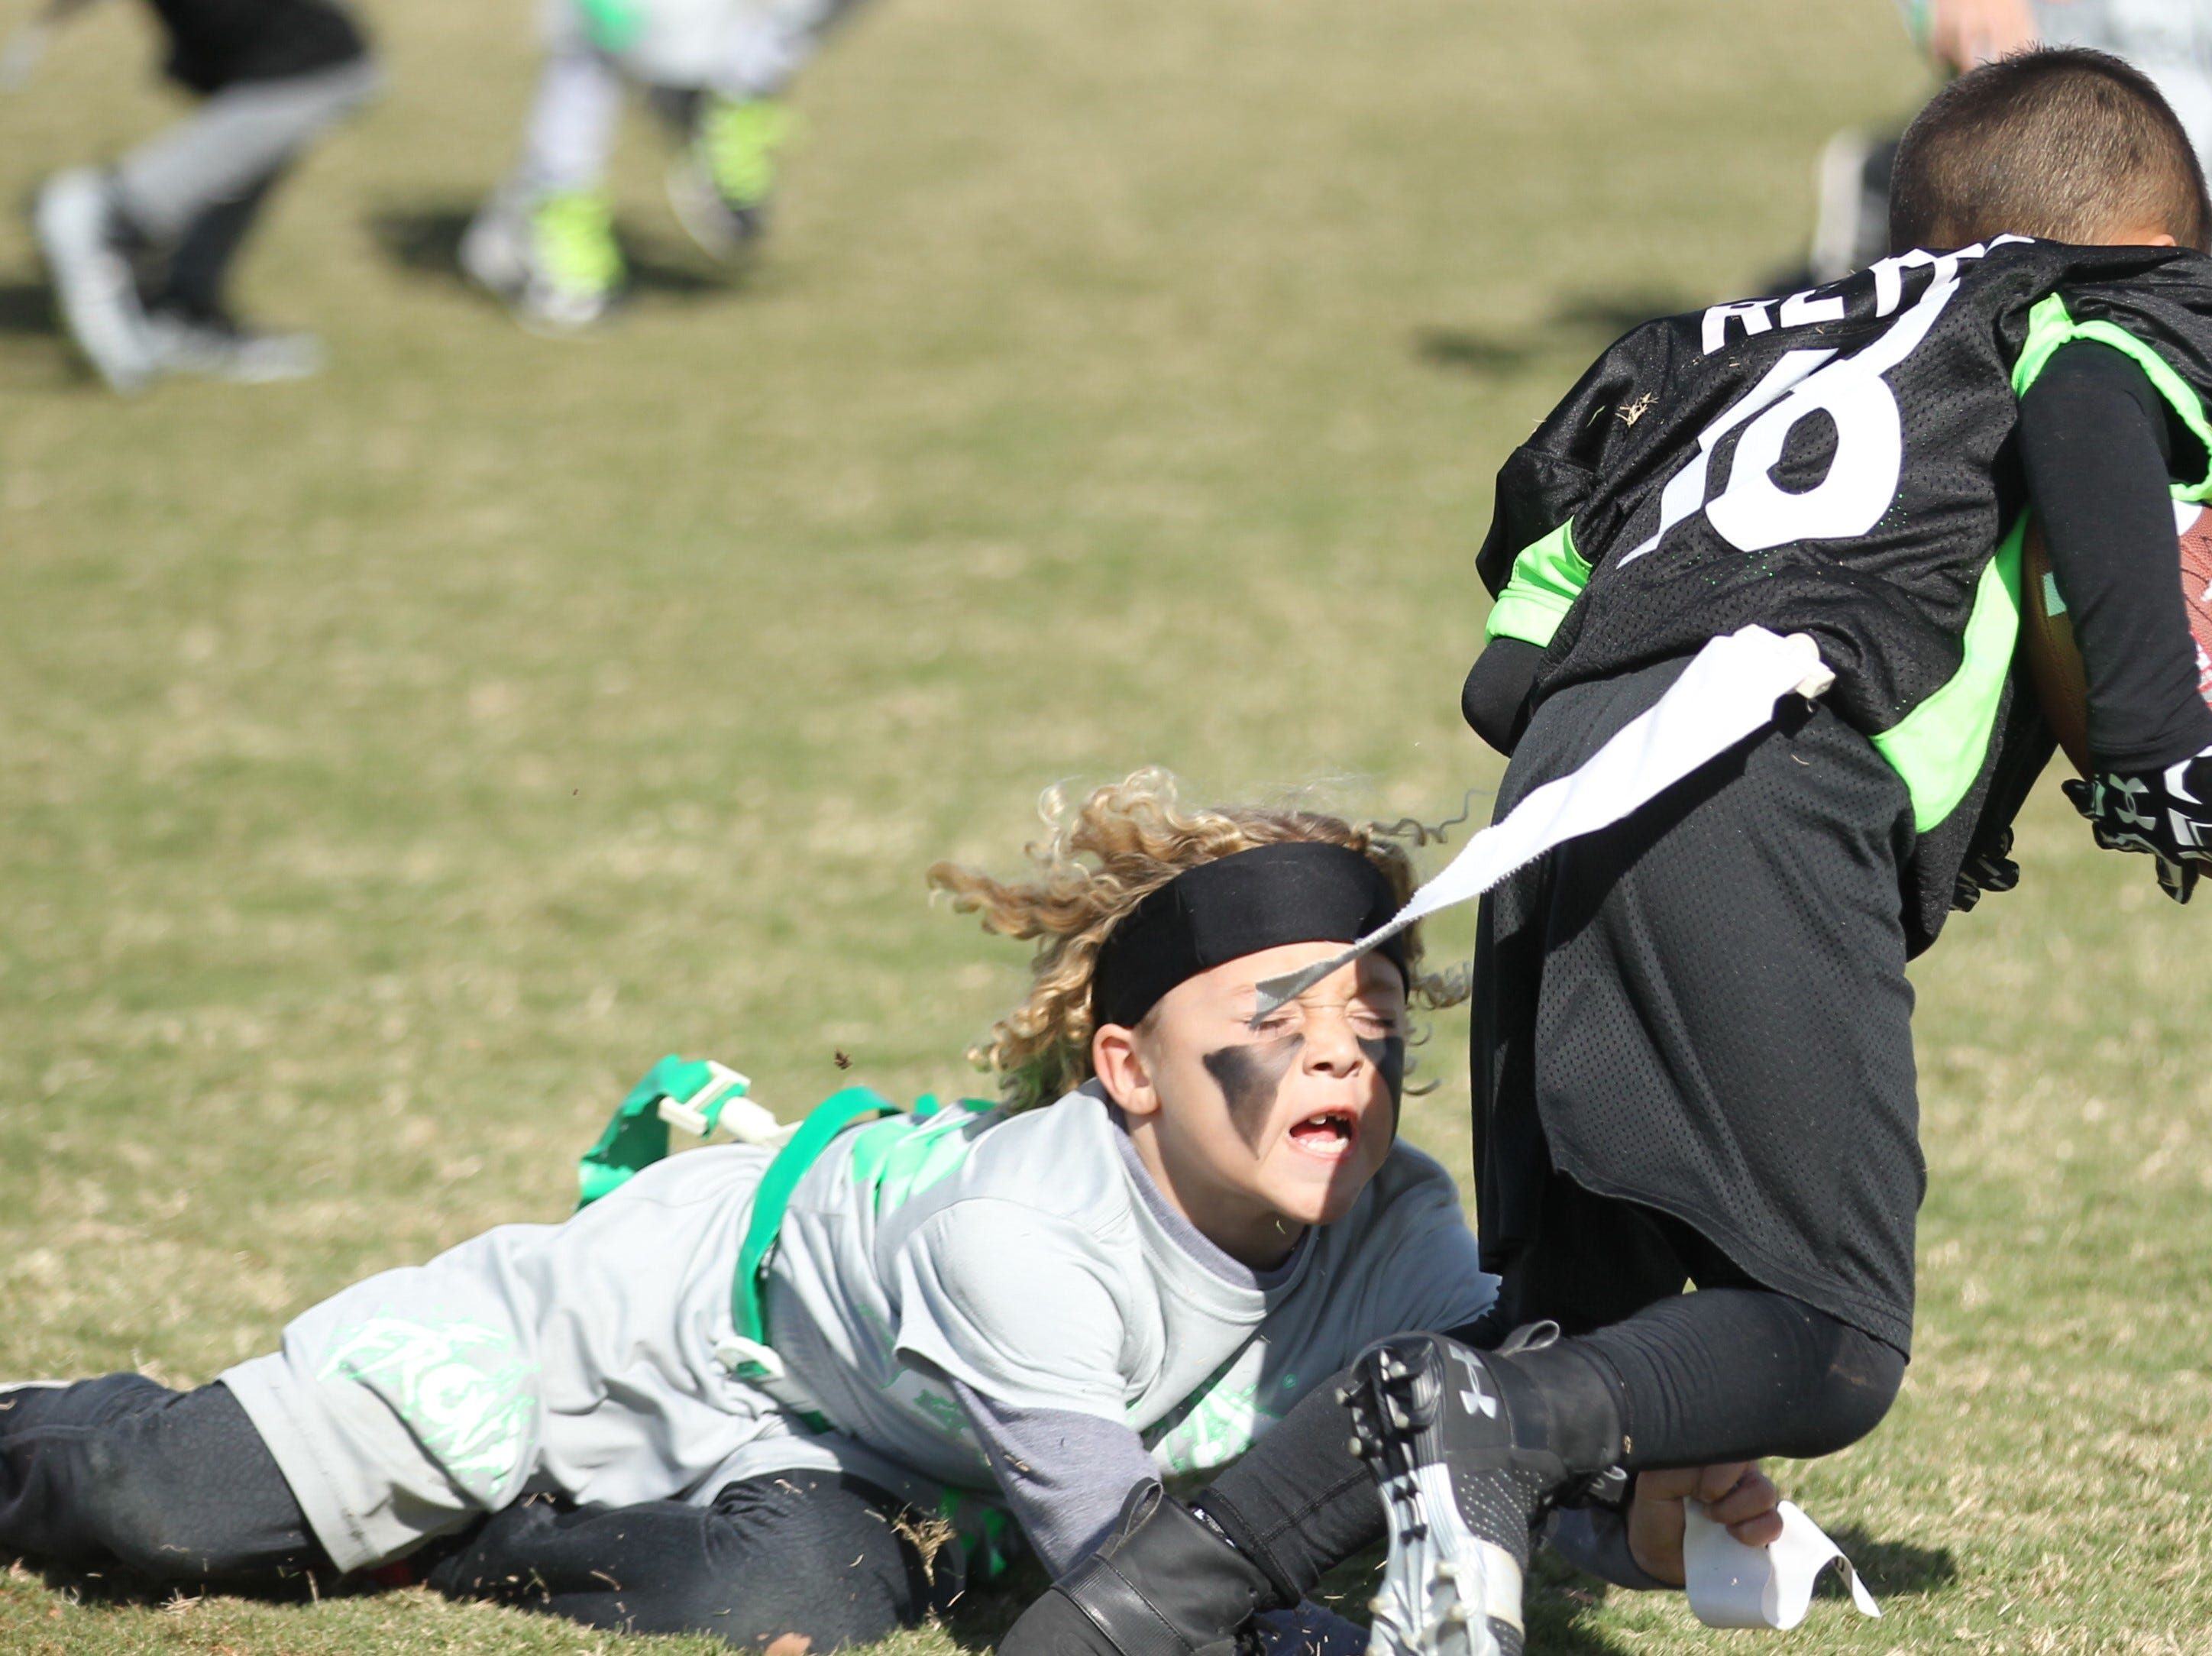 The Front's Trae Chambers goes for the tackle on San Angelo Seahawks' Aiden Reyes during the championship game of the 6u TAAF State Youth Flag Football Tournament at the Texas Bank Sports Complex on Sunday, Nov. 11, 2018. The Front won a defensive battle 13-0.